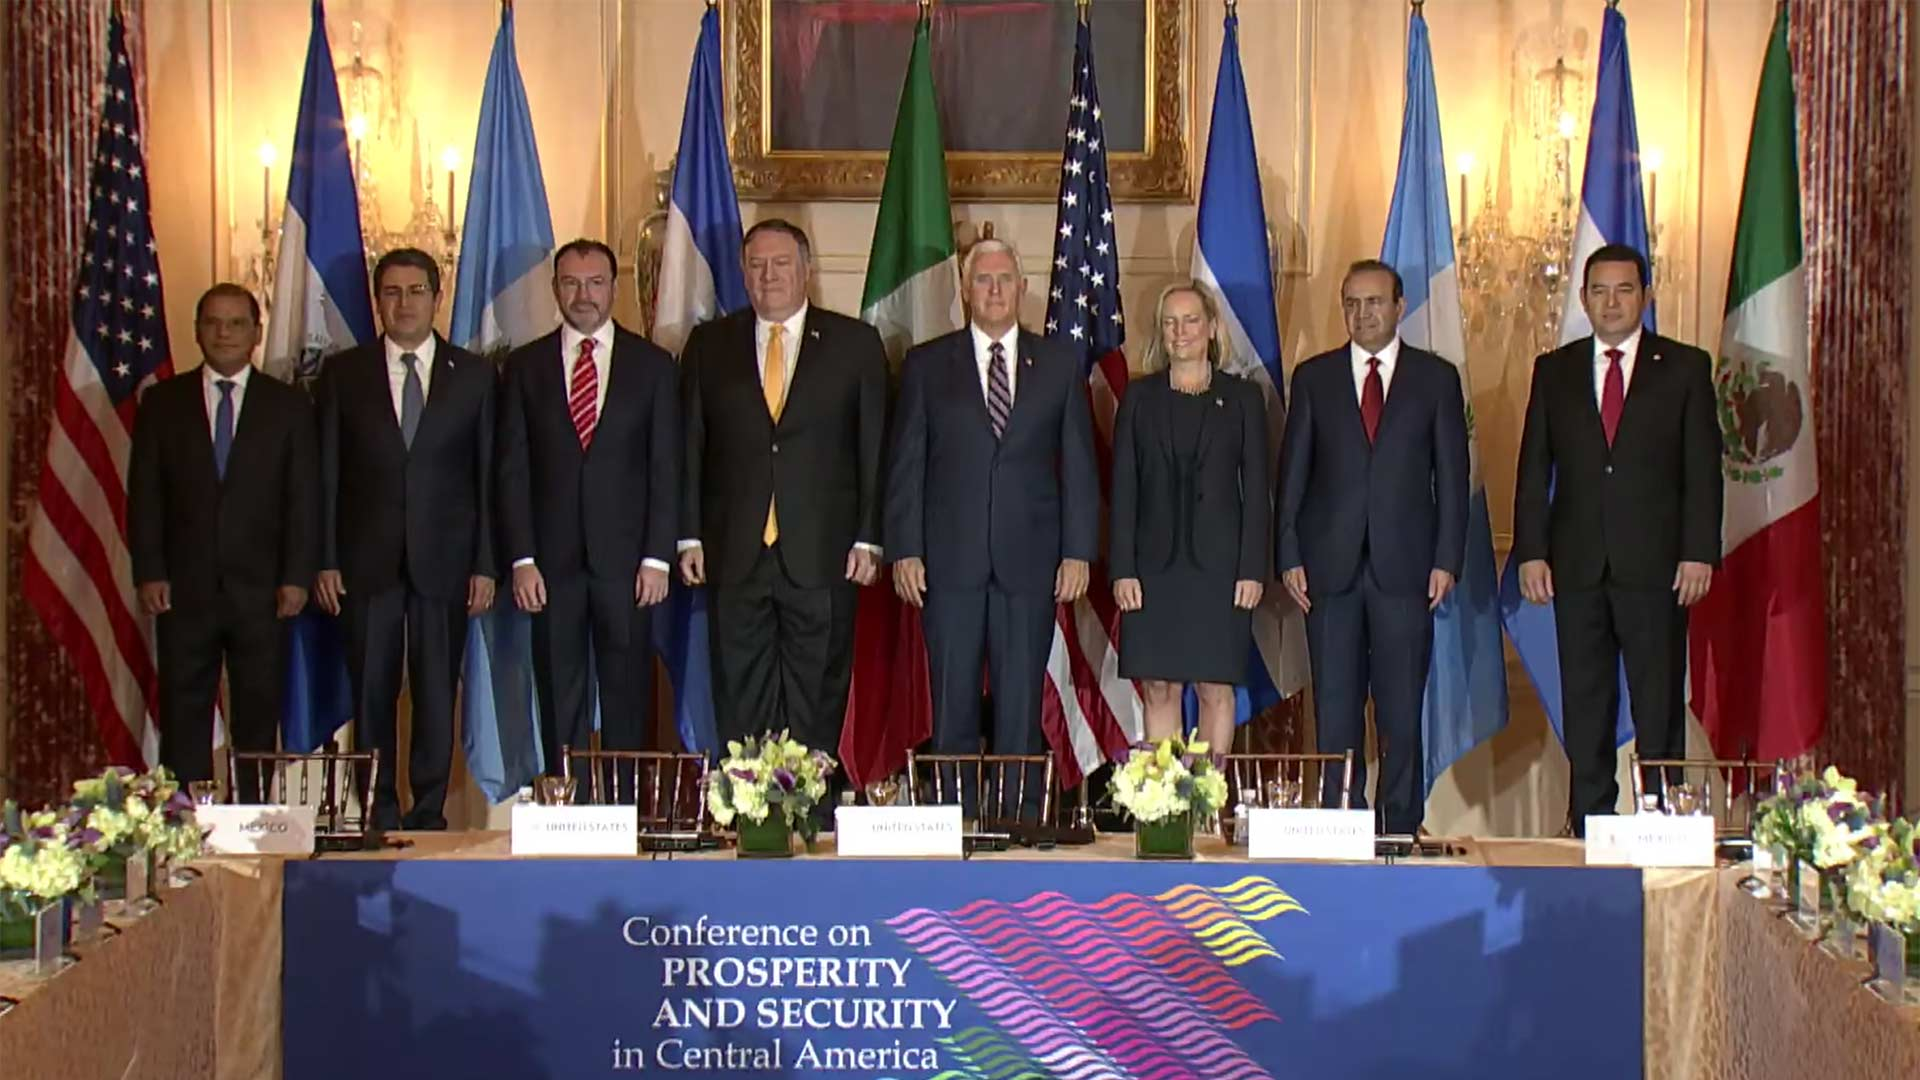 Still image from a Department of State video including Vice President Mike Pence, Secretary of State Michael Pompeo, and Secretary of Homeland Security Kirstjen Nielsen, with leaders from Mexico, Honduras, Guatemala, and El Salvador at the second Conference for Prosperity and Security in Central America, Oct. 11, 2018.